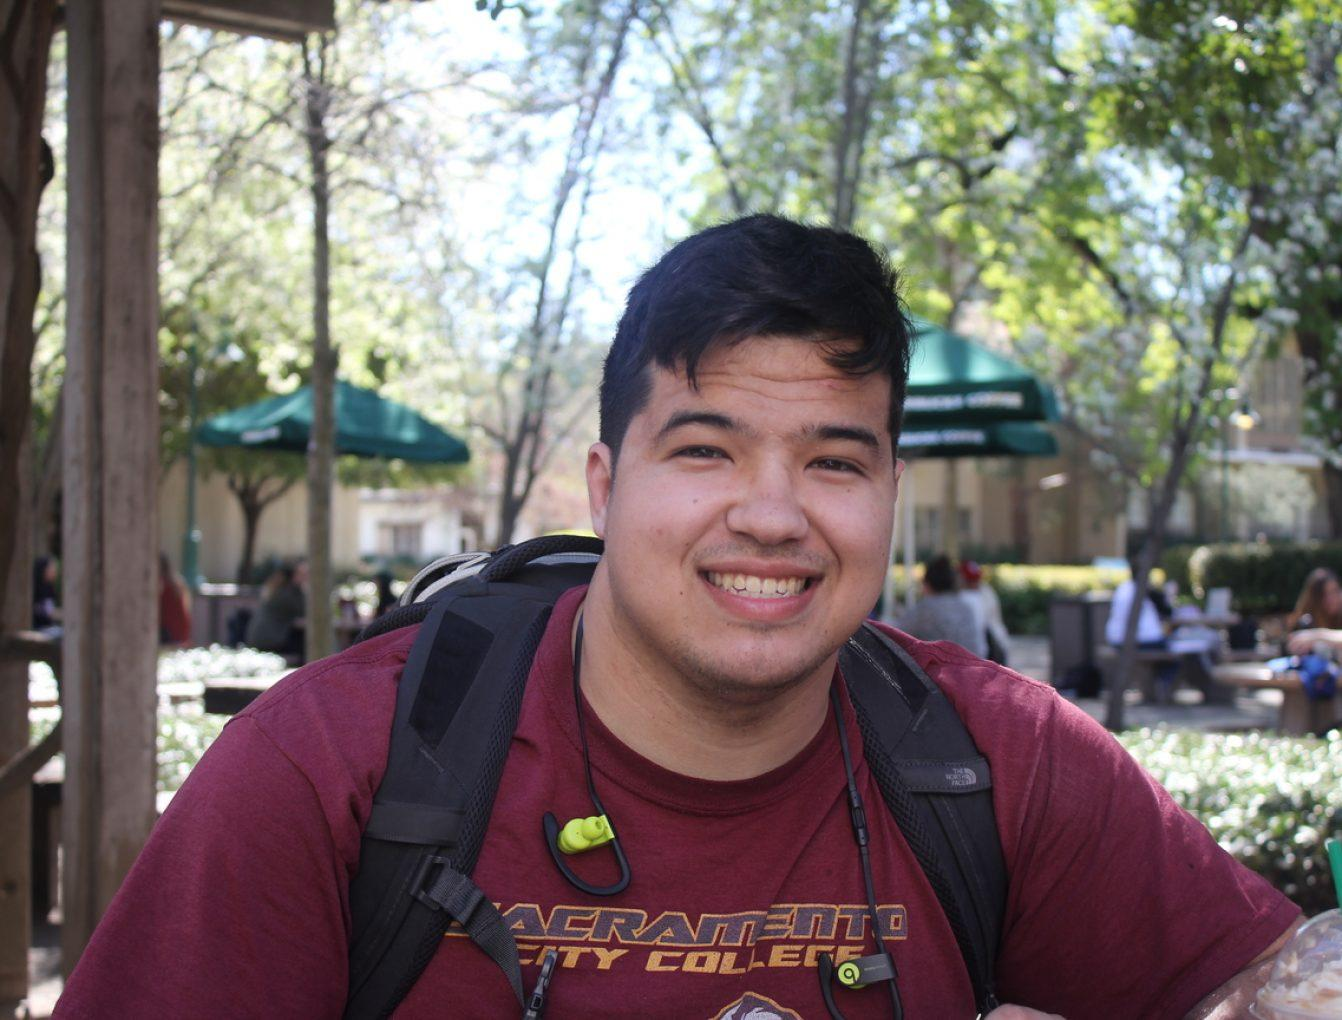 """Max Tsutsui (Humanities and Religious studies): """"It's optional. You have the week off and anything can happen, but I don't fly out to Florida. I never planned to do big spring break stuff."""""""